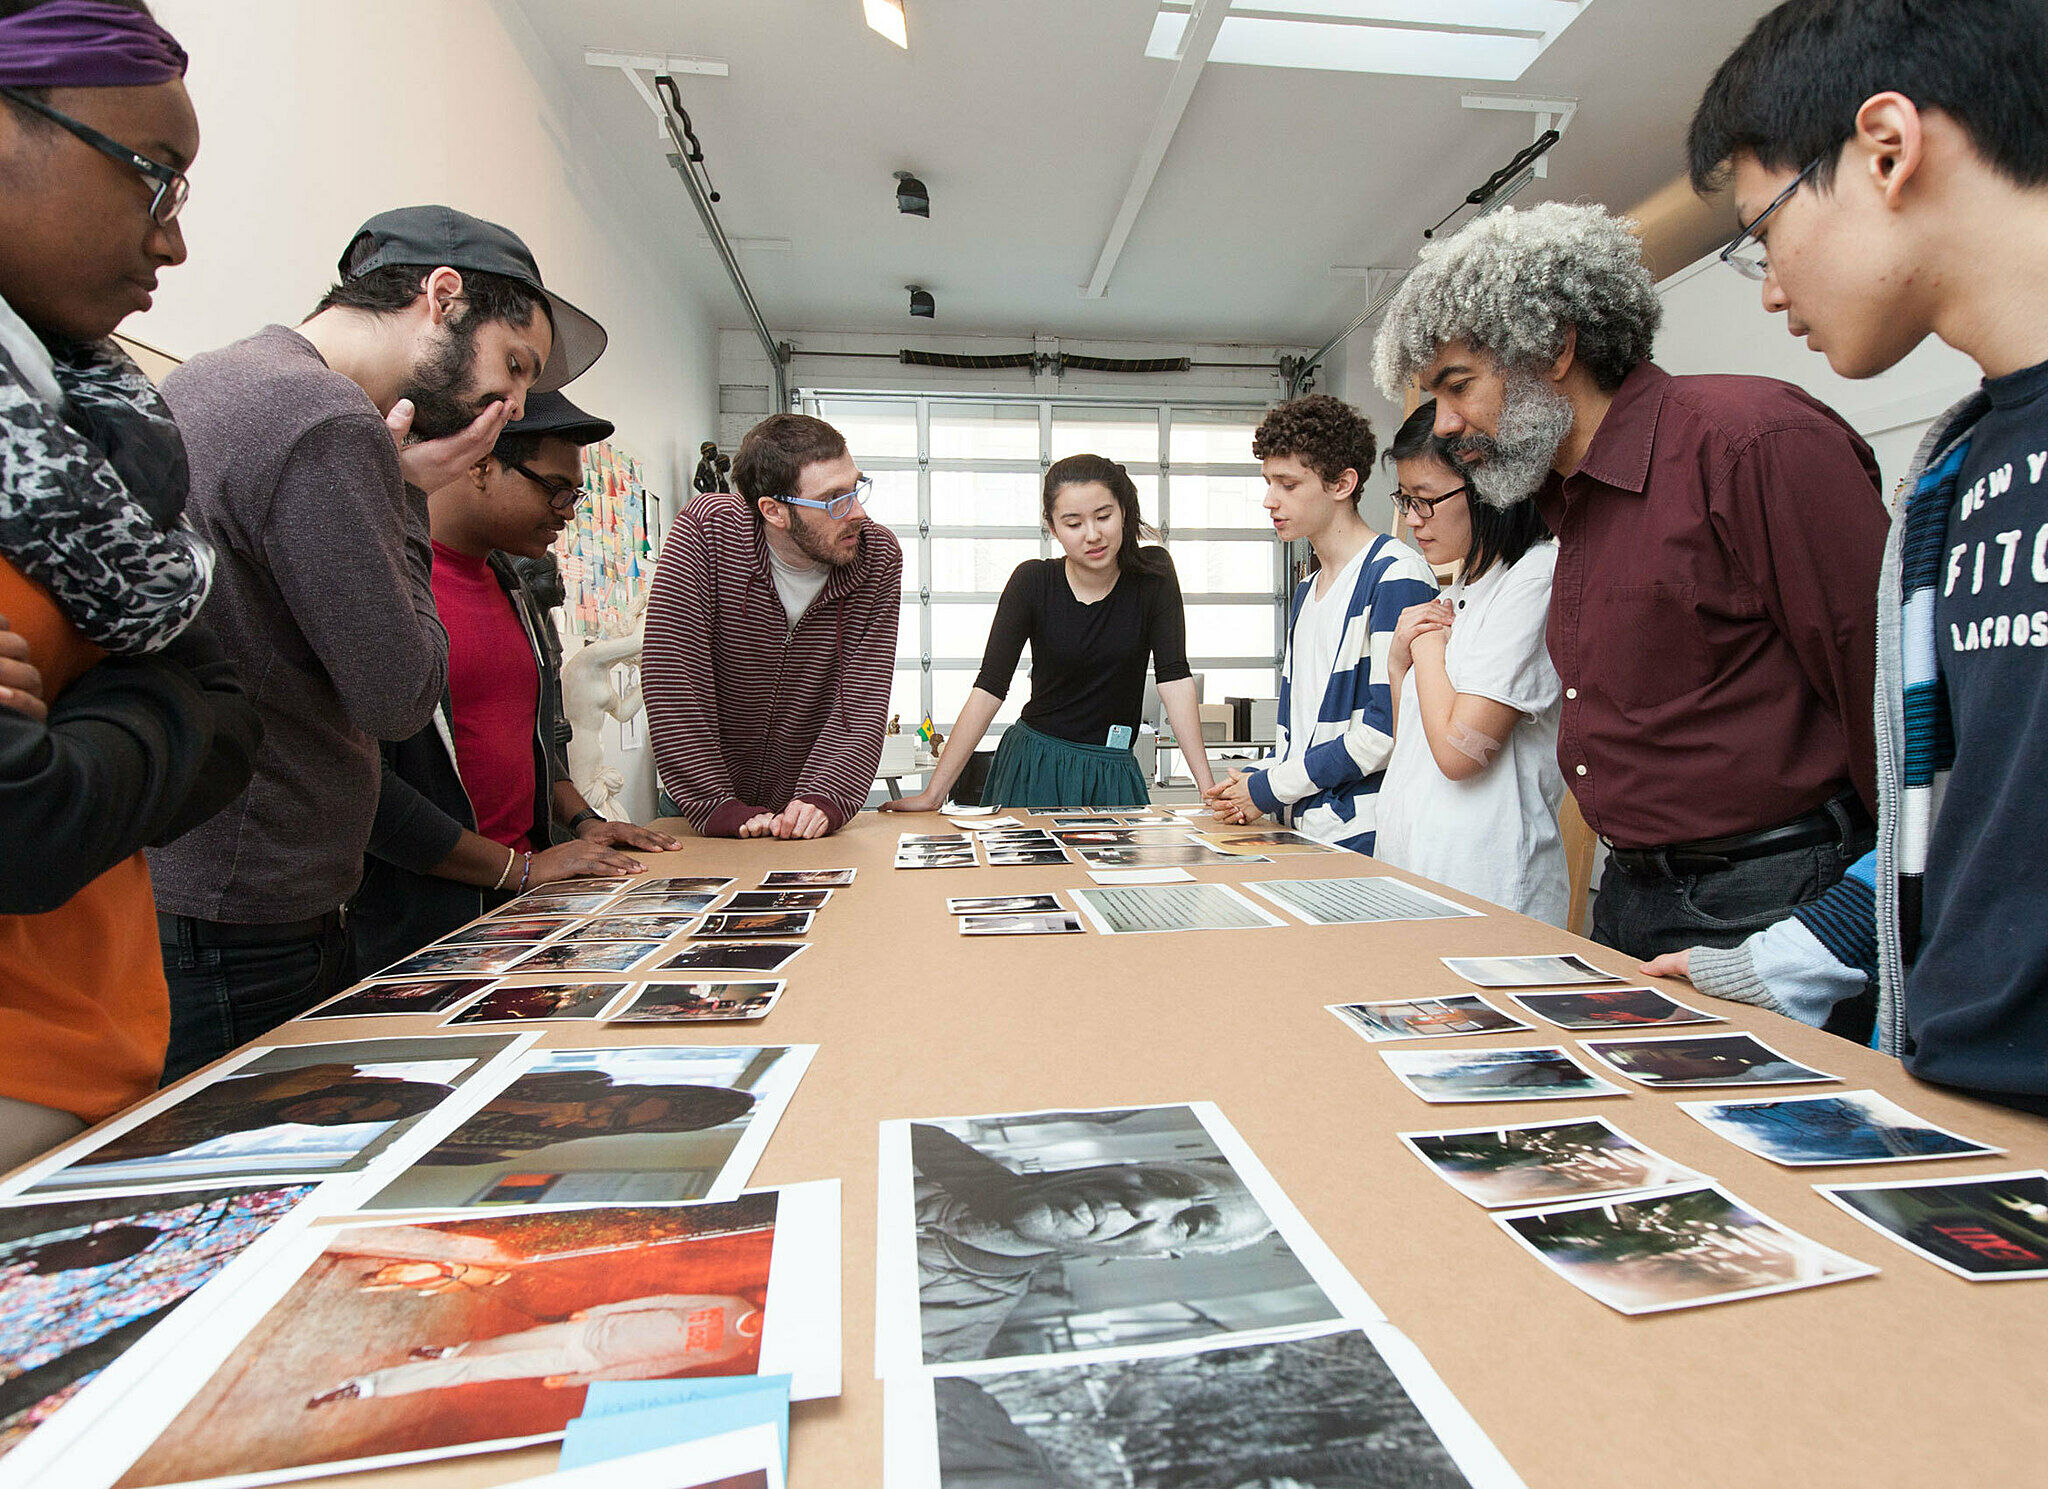 Artist looks at his photos on table with students.